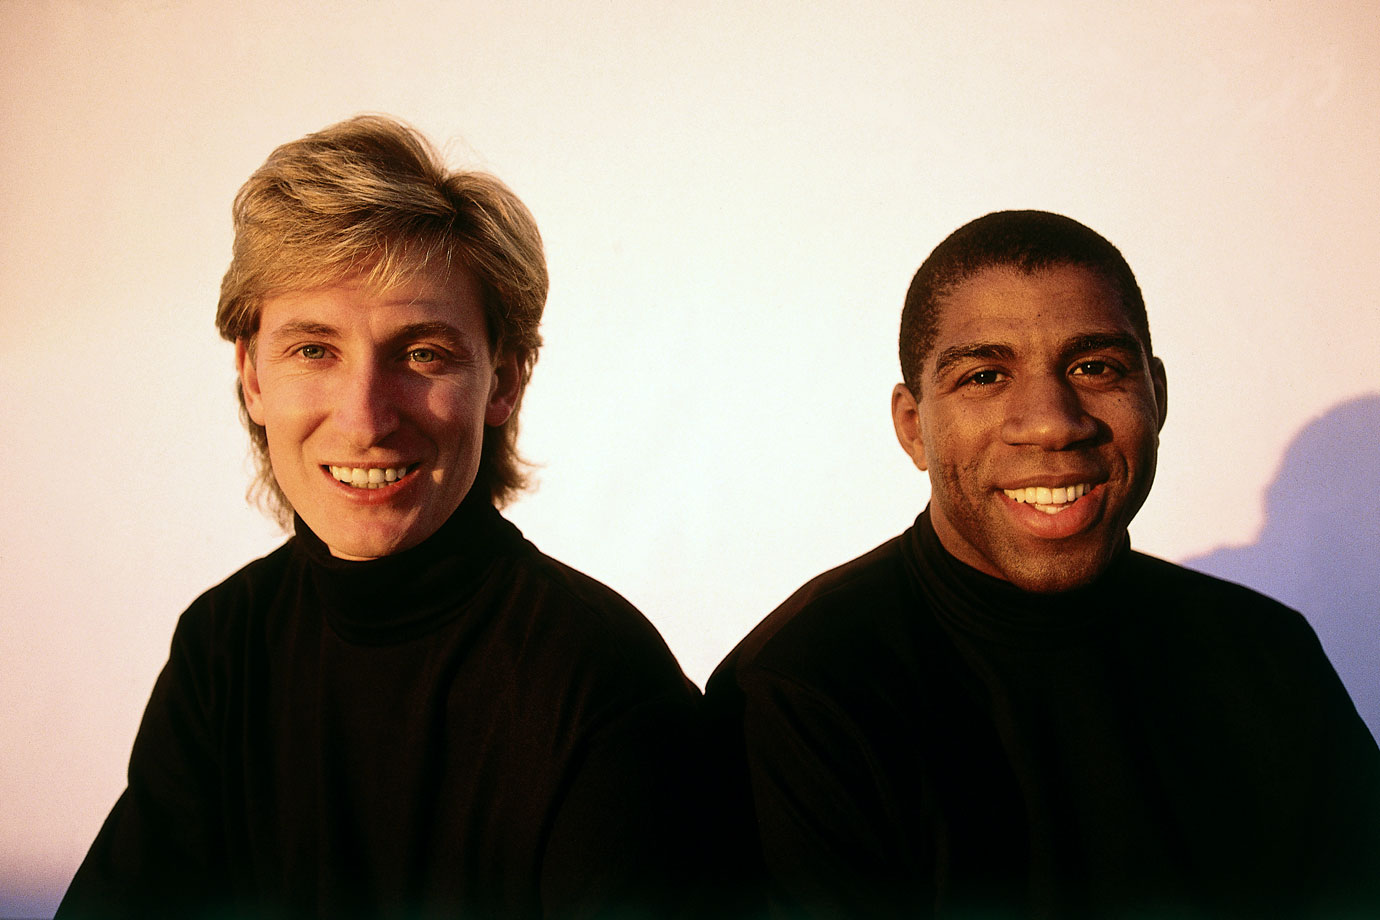 Gretzky's trade from the Oilers to the Los Angeles Kings in August 1988 was a landmark event for hockey in the United States. The Great One was welcomed to L.A. by Lakers superstar Magic Johnson.